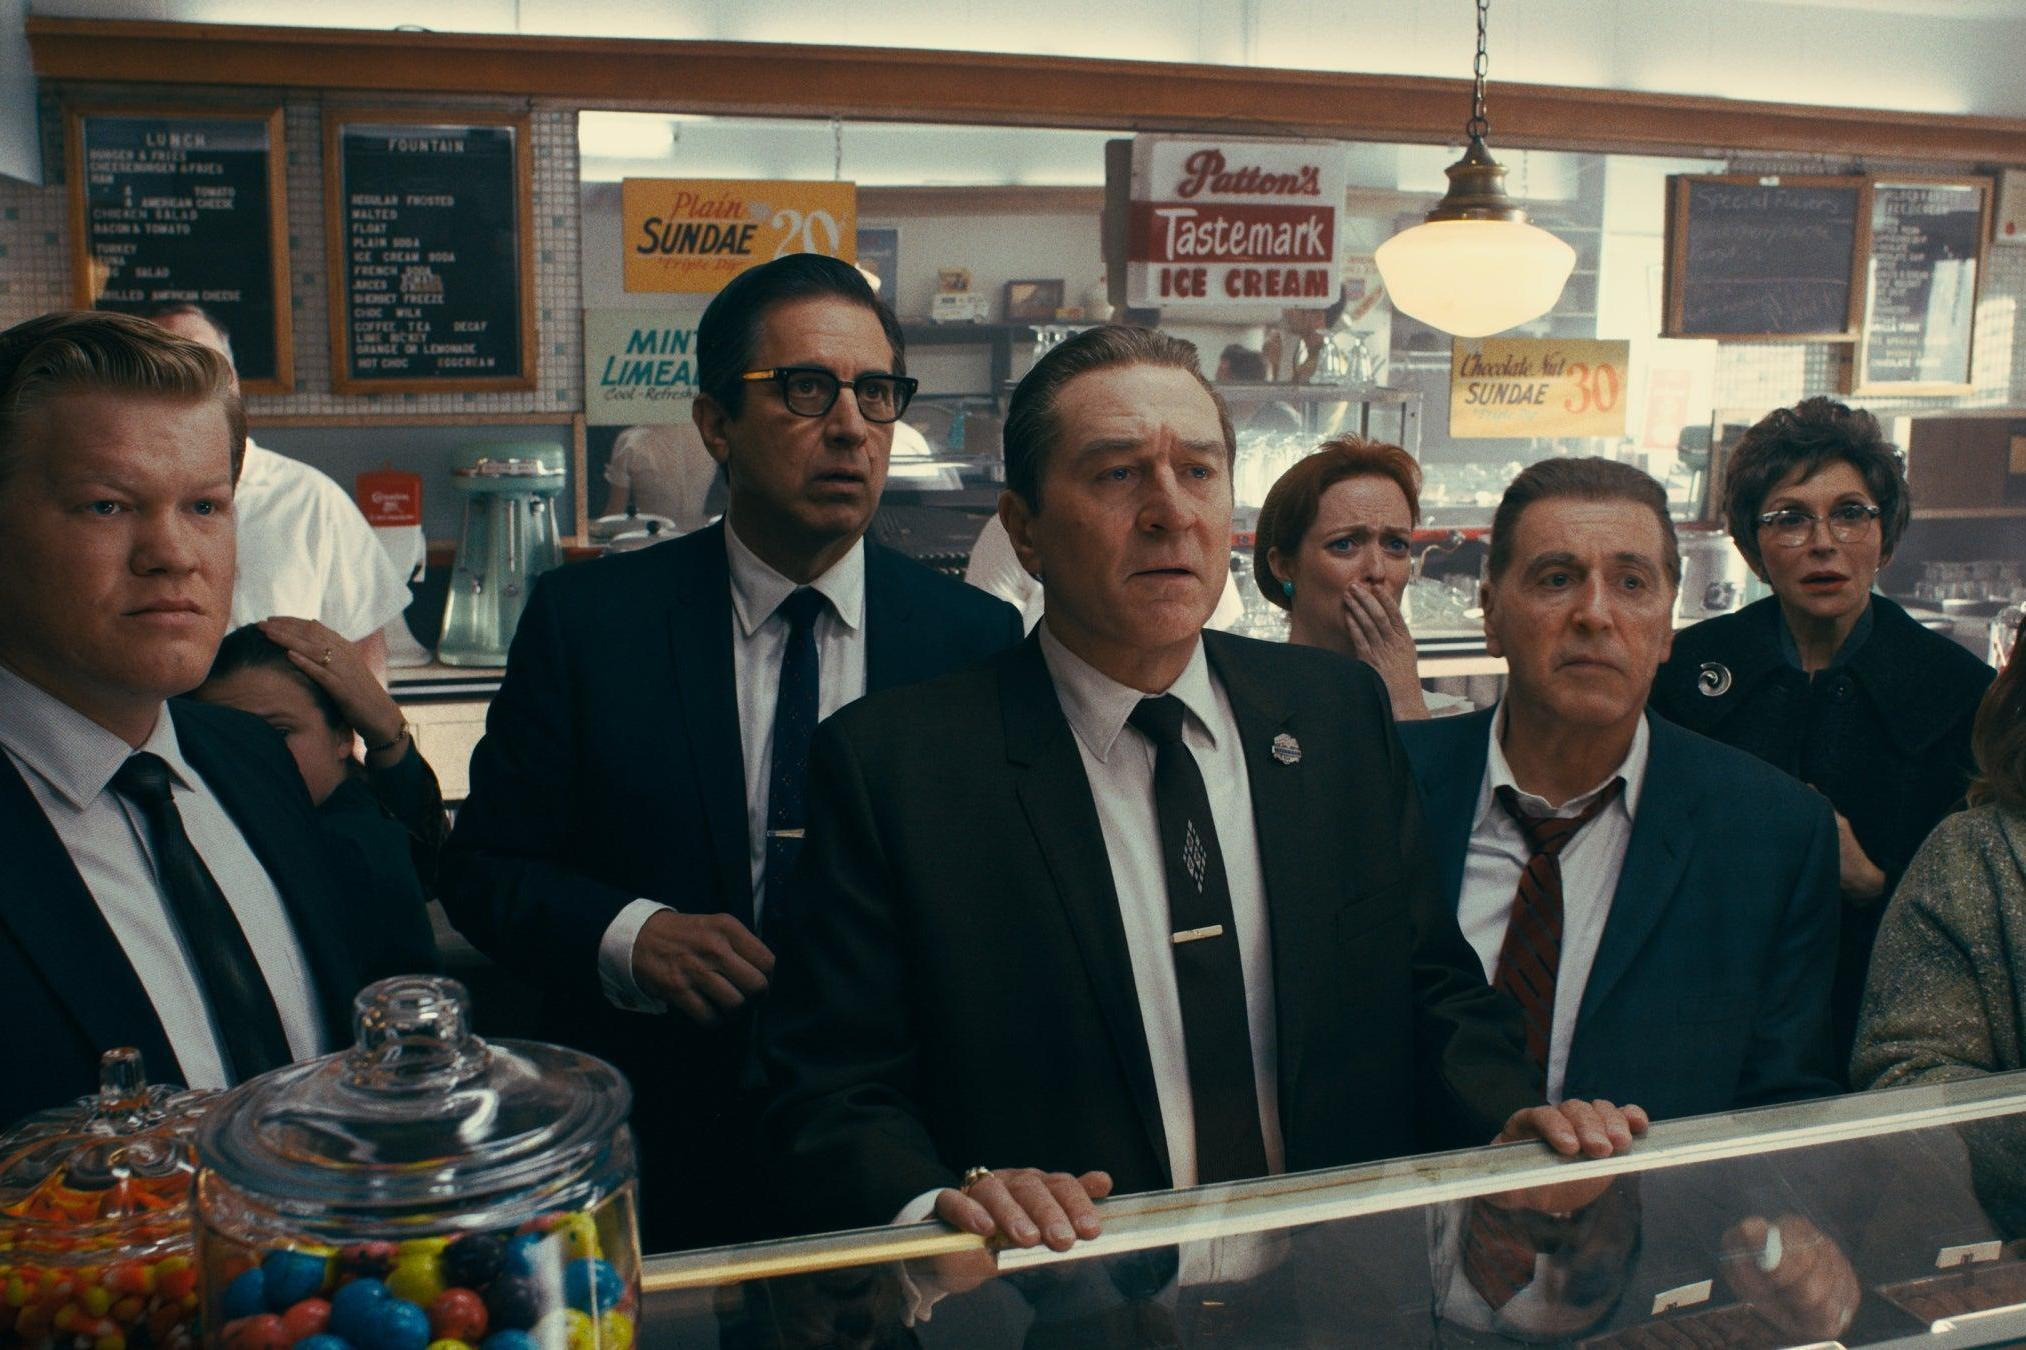 The-Irishman-film-still.jpg